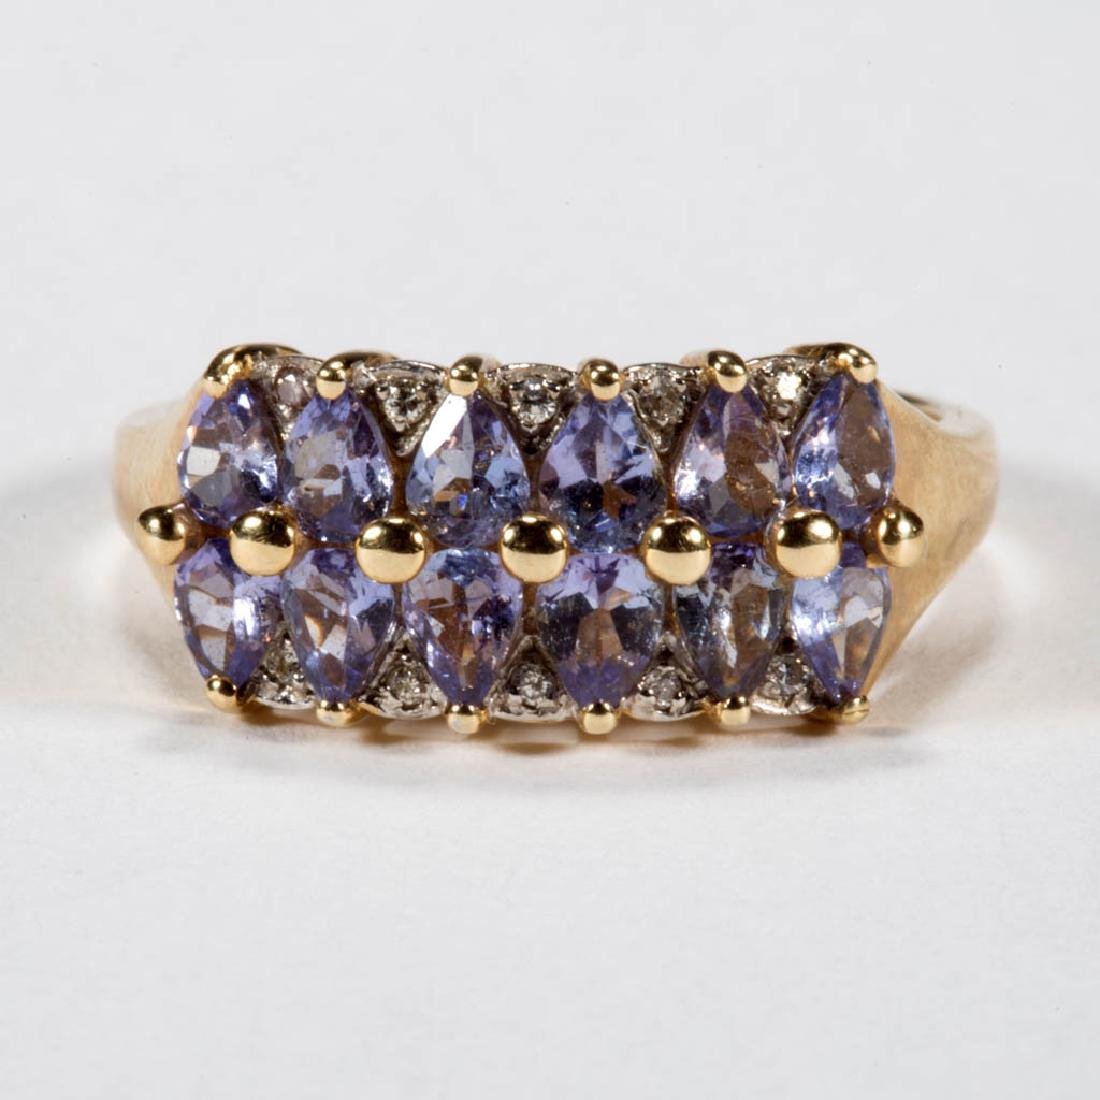 VINTAGE 14K GOLD AND TANZANITE LADY'S RING